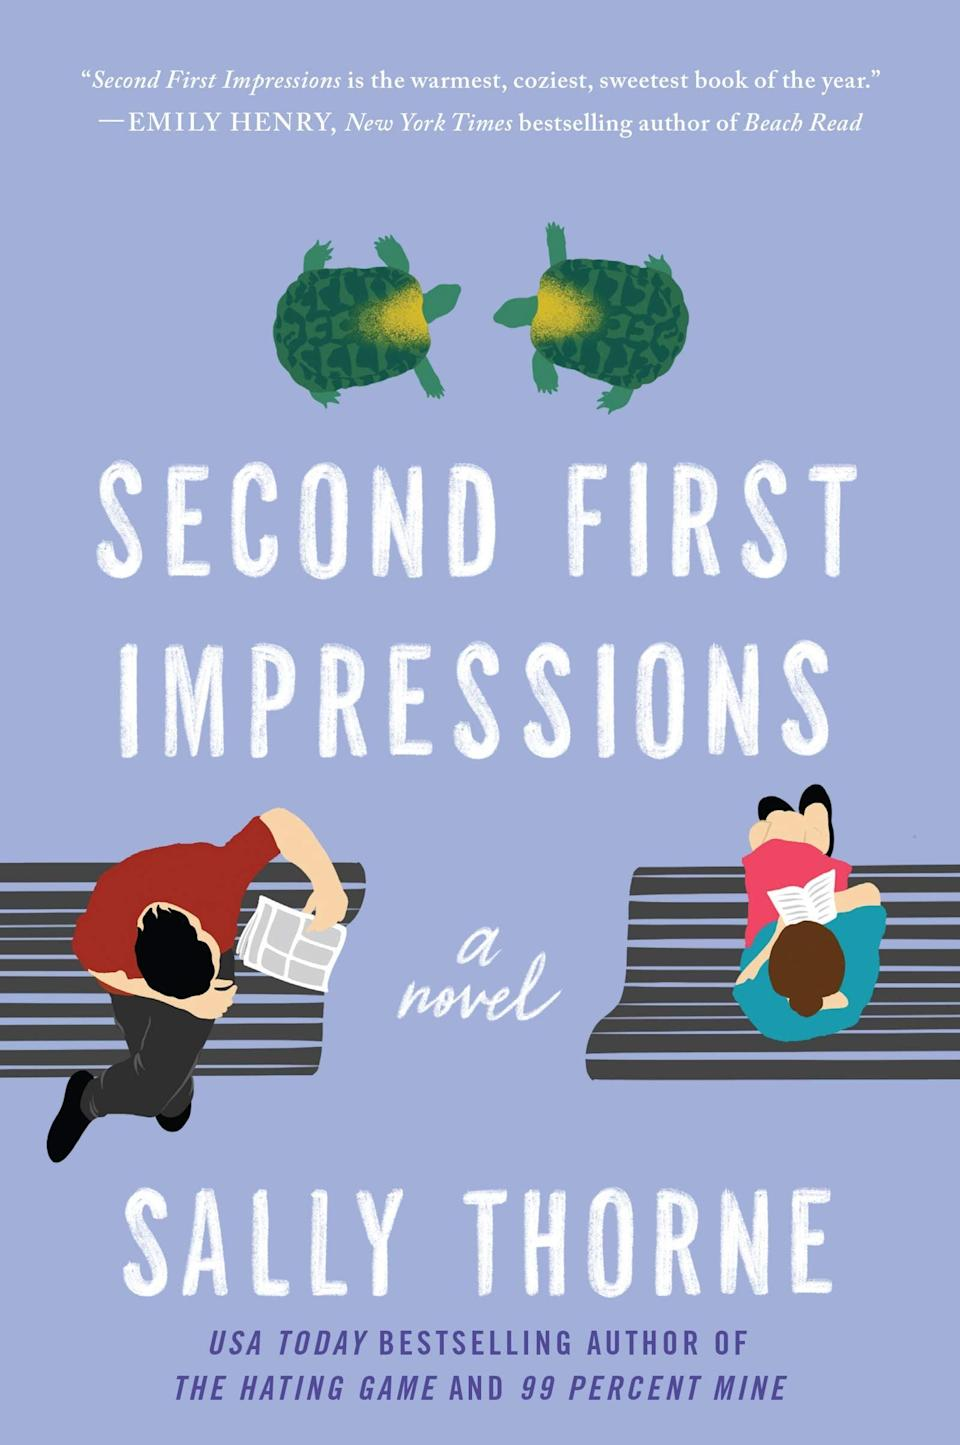 <p>Set against the backdrop of a retirement home, <span><strong>Second First Impressions</strong></span> by Sally Thorne is one of those books that will genuinely make you laugh out loud. Teddy Prescott is a restless guy with zero interest in settling down - but he does need a place to crash, which is how he ends up as the caretaker for the vivacious Parloni Sisters. What he doesn't bargain for is just how hard he'll fall for the no-nonsense Ruthie Midona, who is angling for a management position at the home. </p> <p><em>Out April 13</em></p>